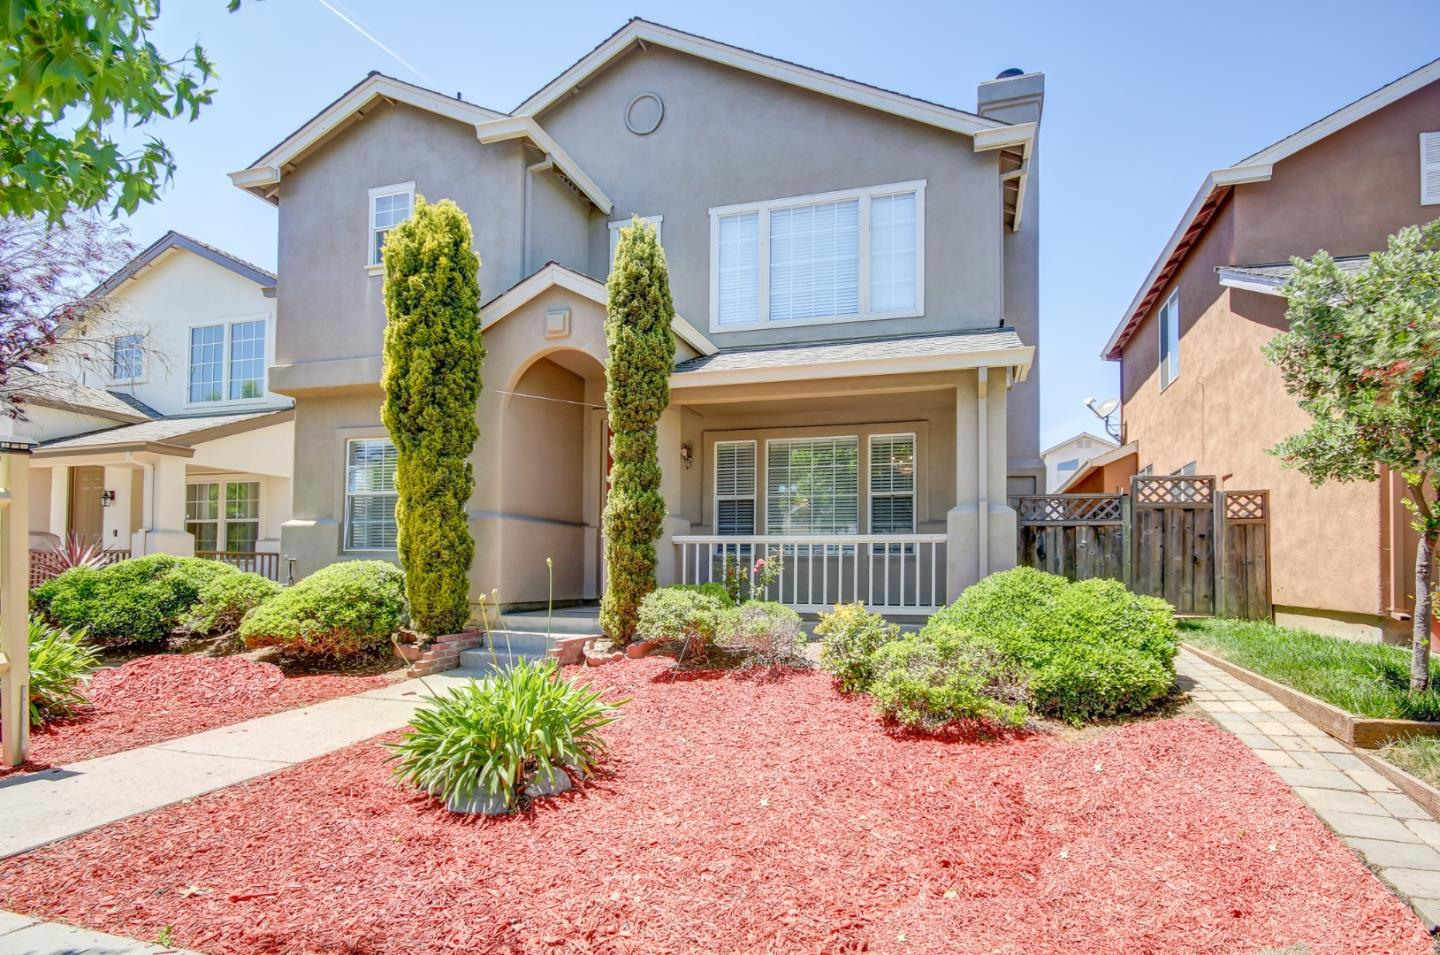 Detail Gallery Image 1 of 1 For 1627 Beacon Hill Dr, Salinas, CA 93906 - 4 Beds | 2/1 Baths